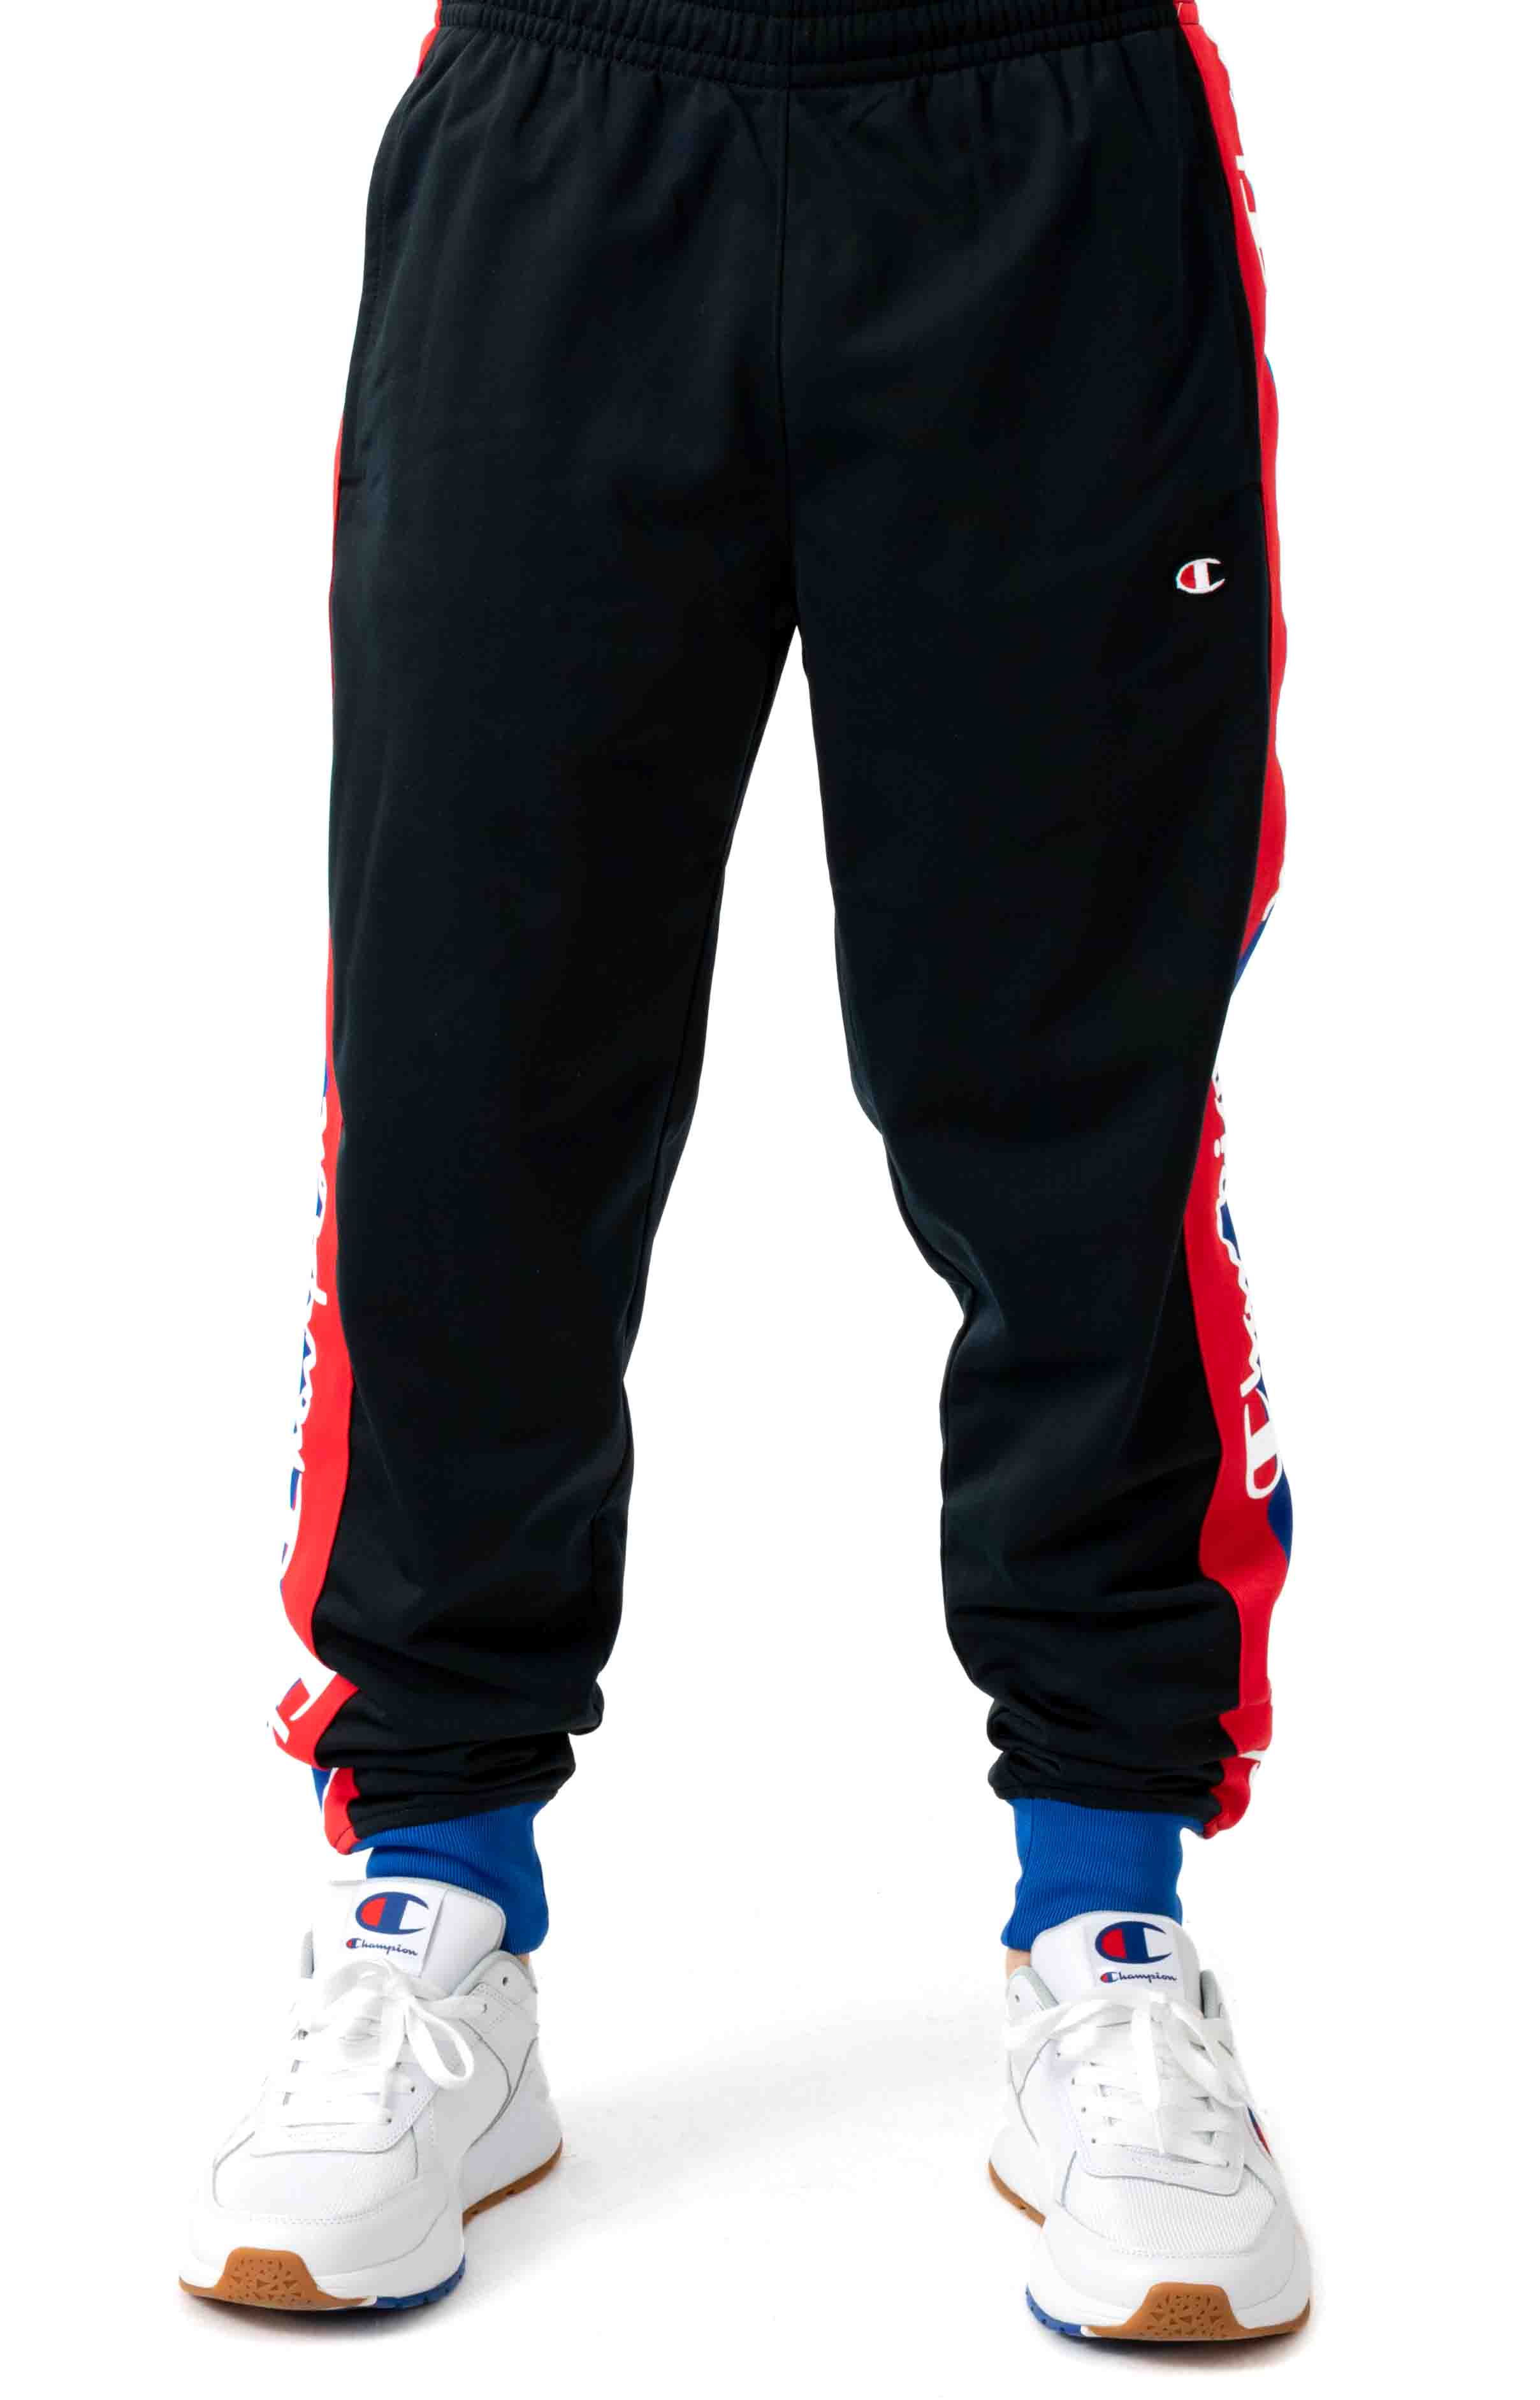 Tricot Track Pant w/ Champion Taping - Black/Surf the Web 2